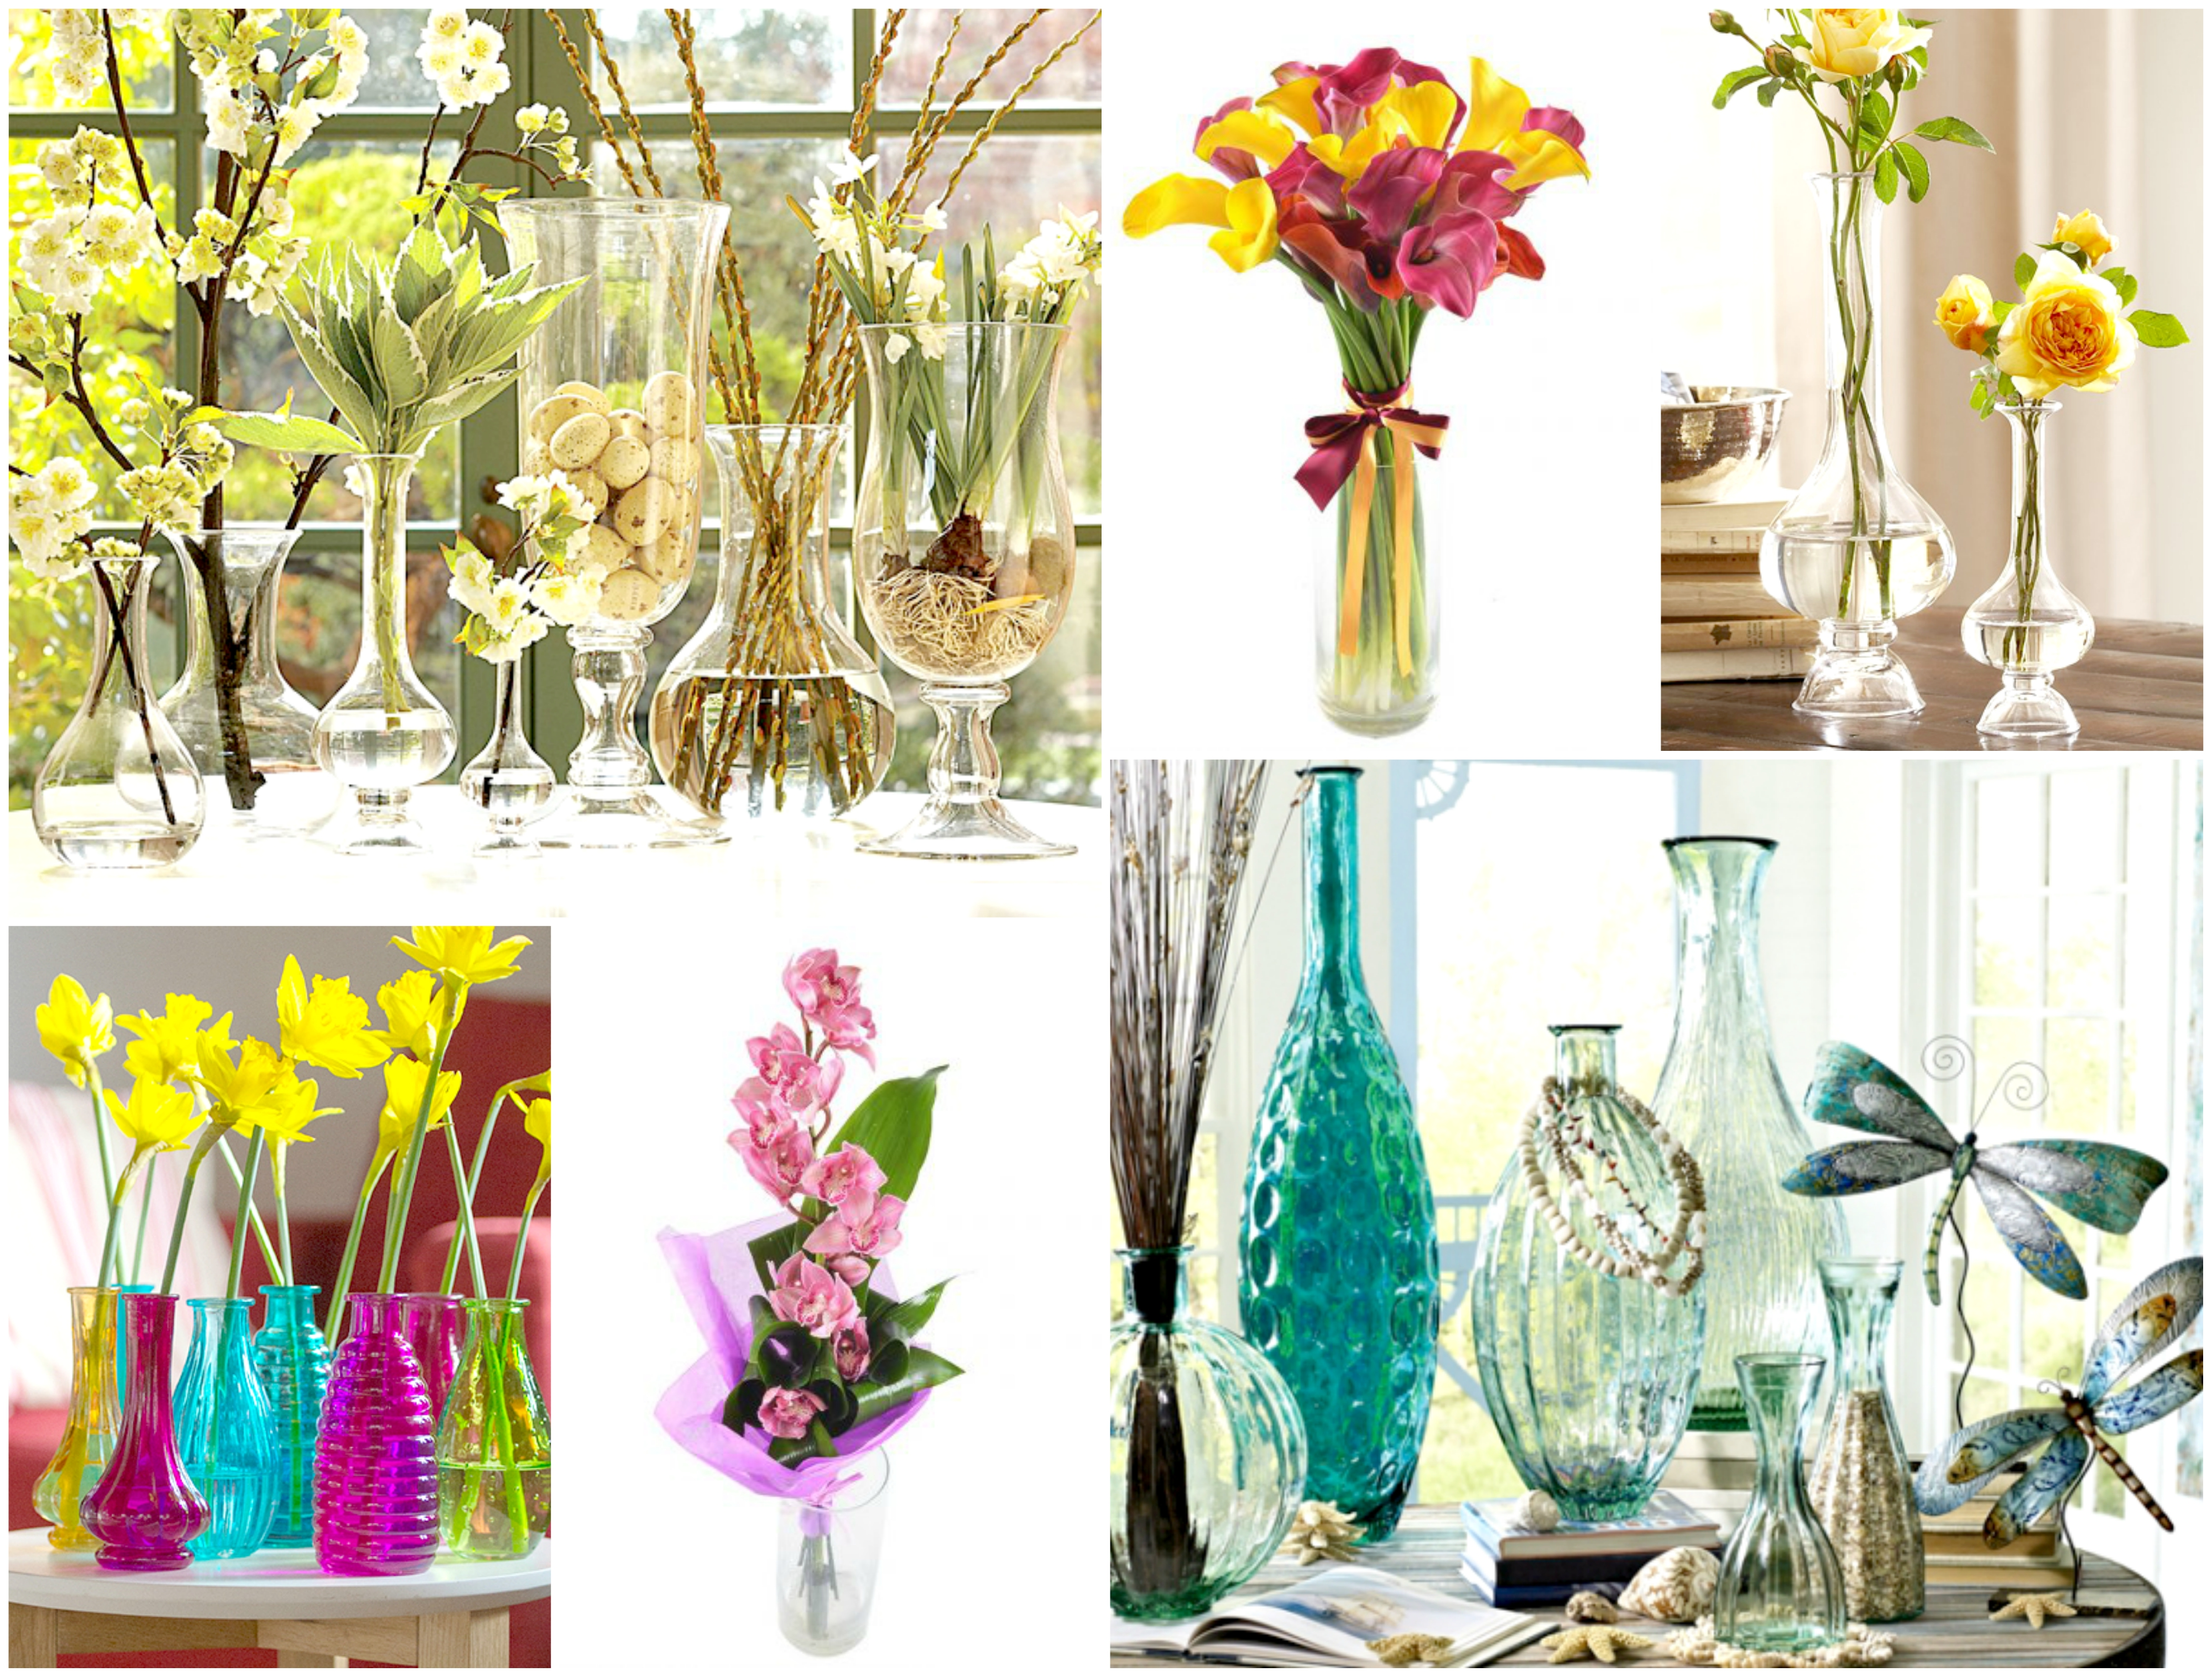 Simple glass vases